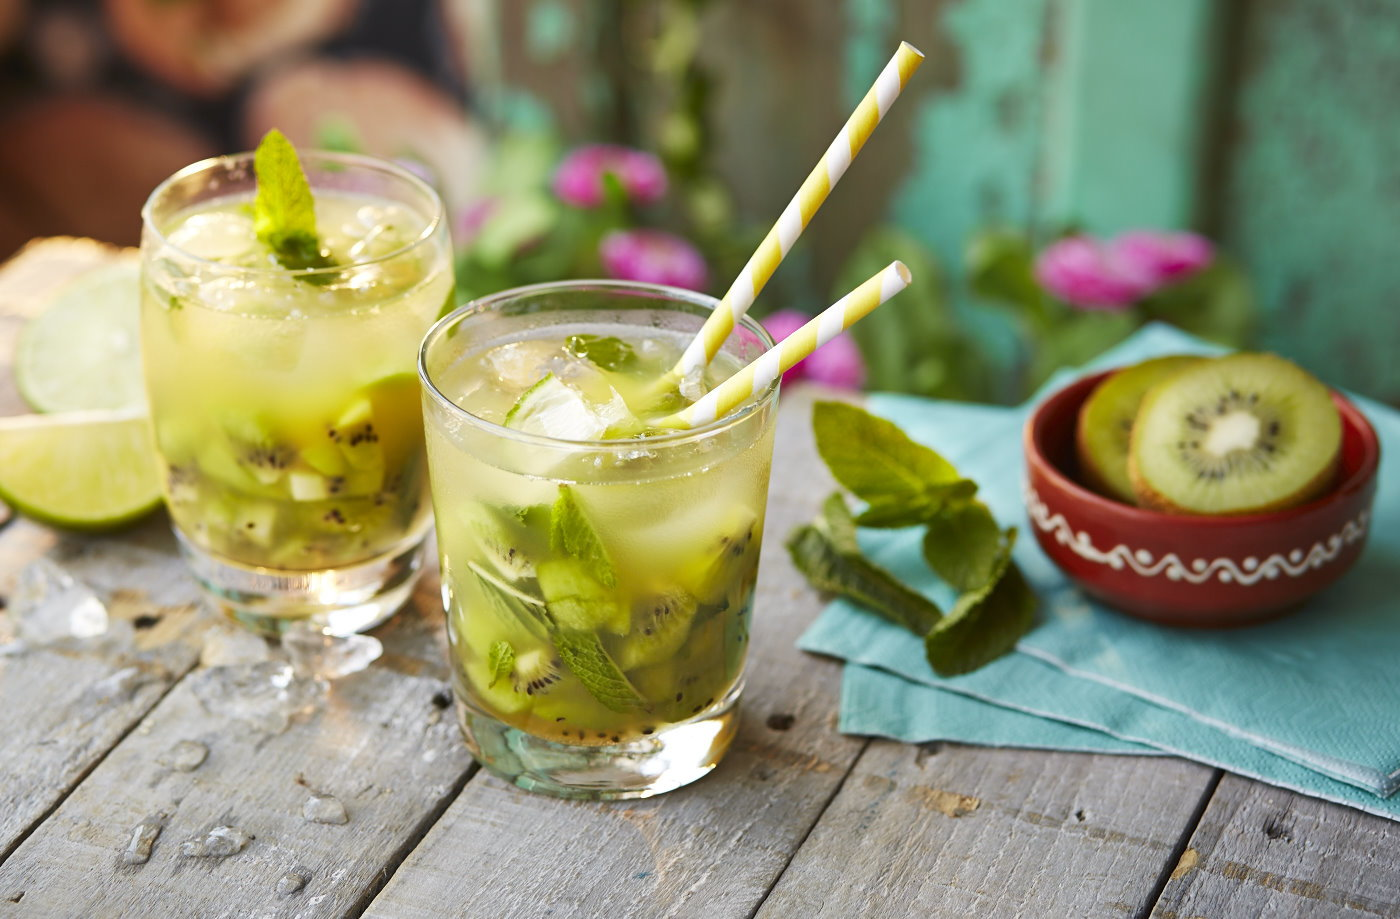 Kiwi and pineapple Caipiroska recipe